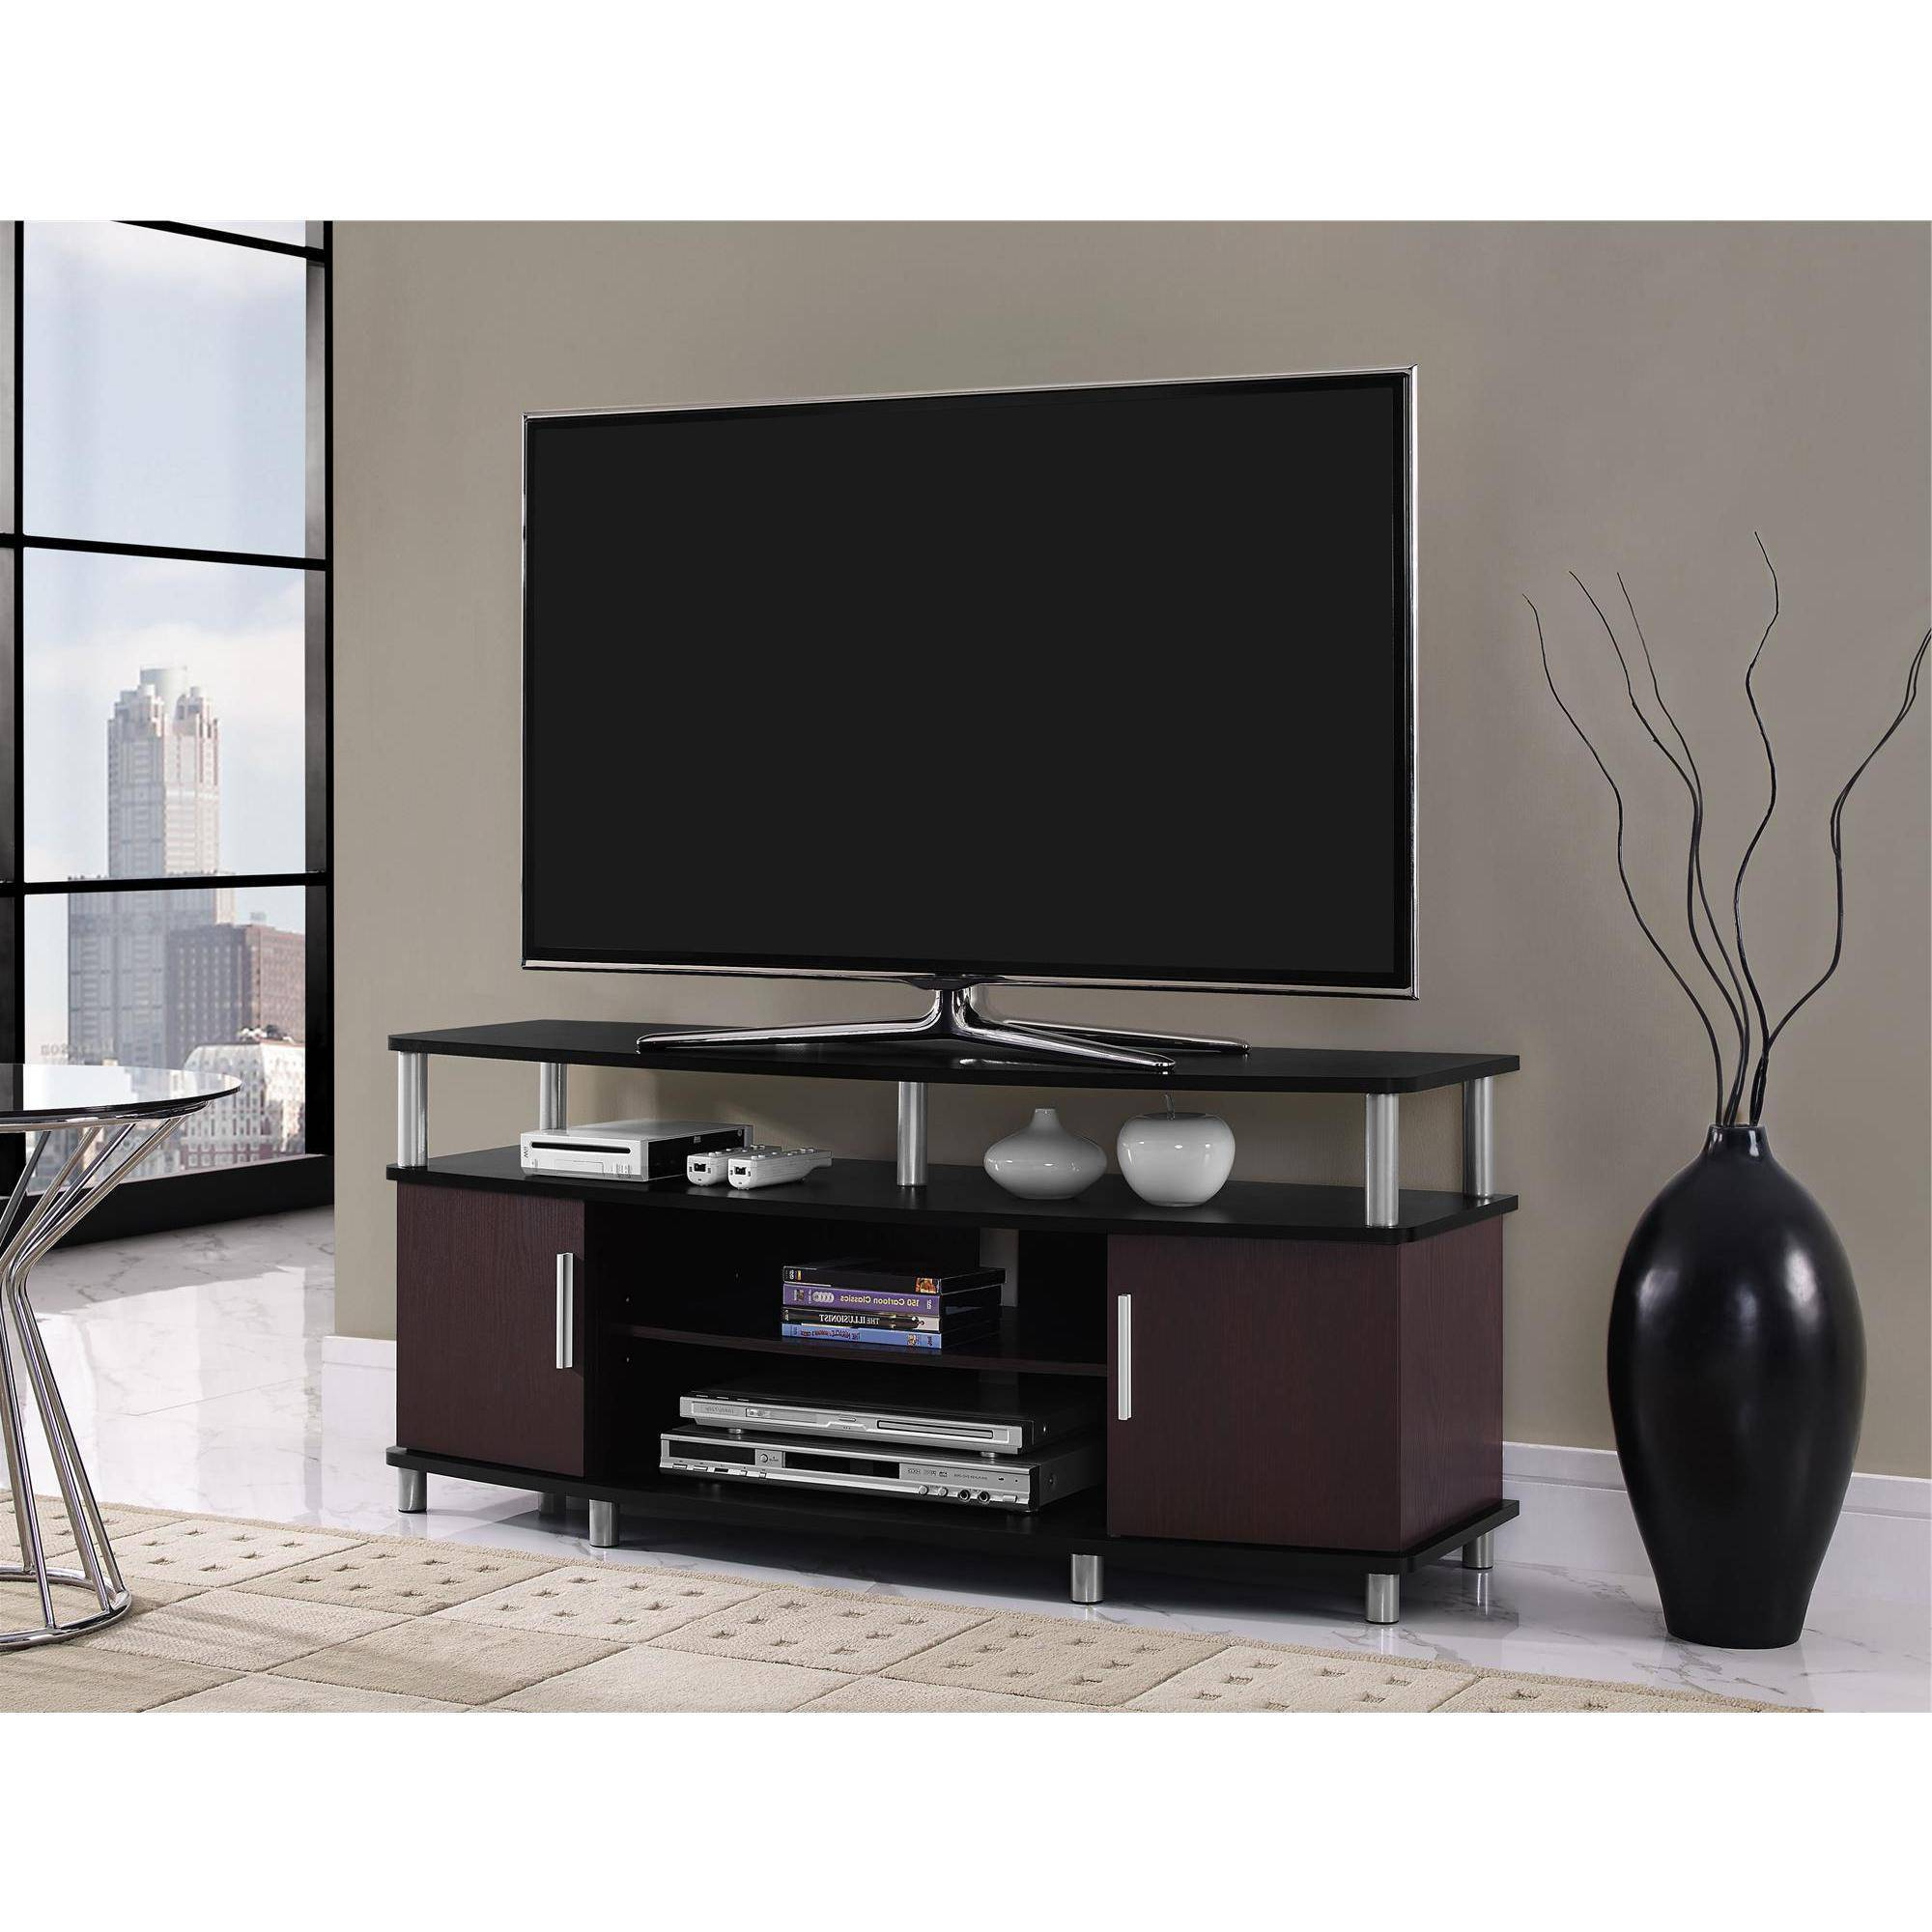 "Newest Carson Tv Stand, For Tvs Up To 50"", Multiple Finishes – Walmart For 24 Inch Led Tv Stands (View 15 of 20)"